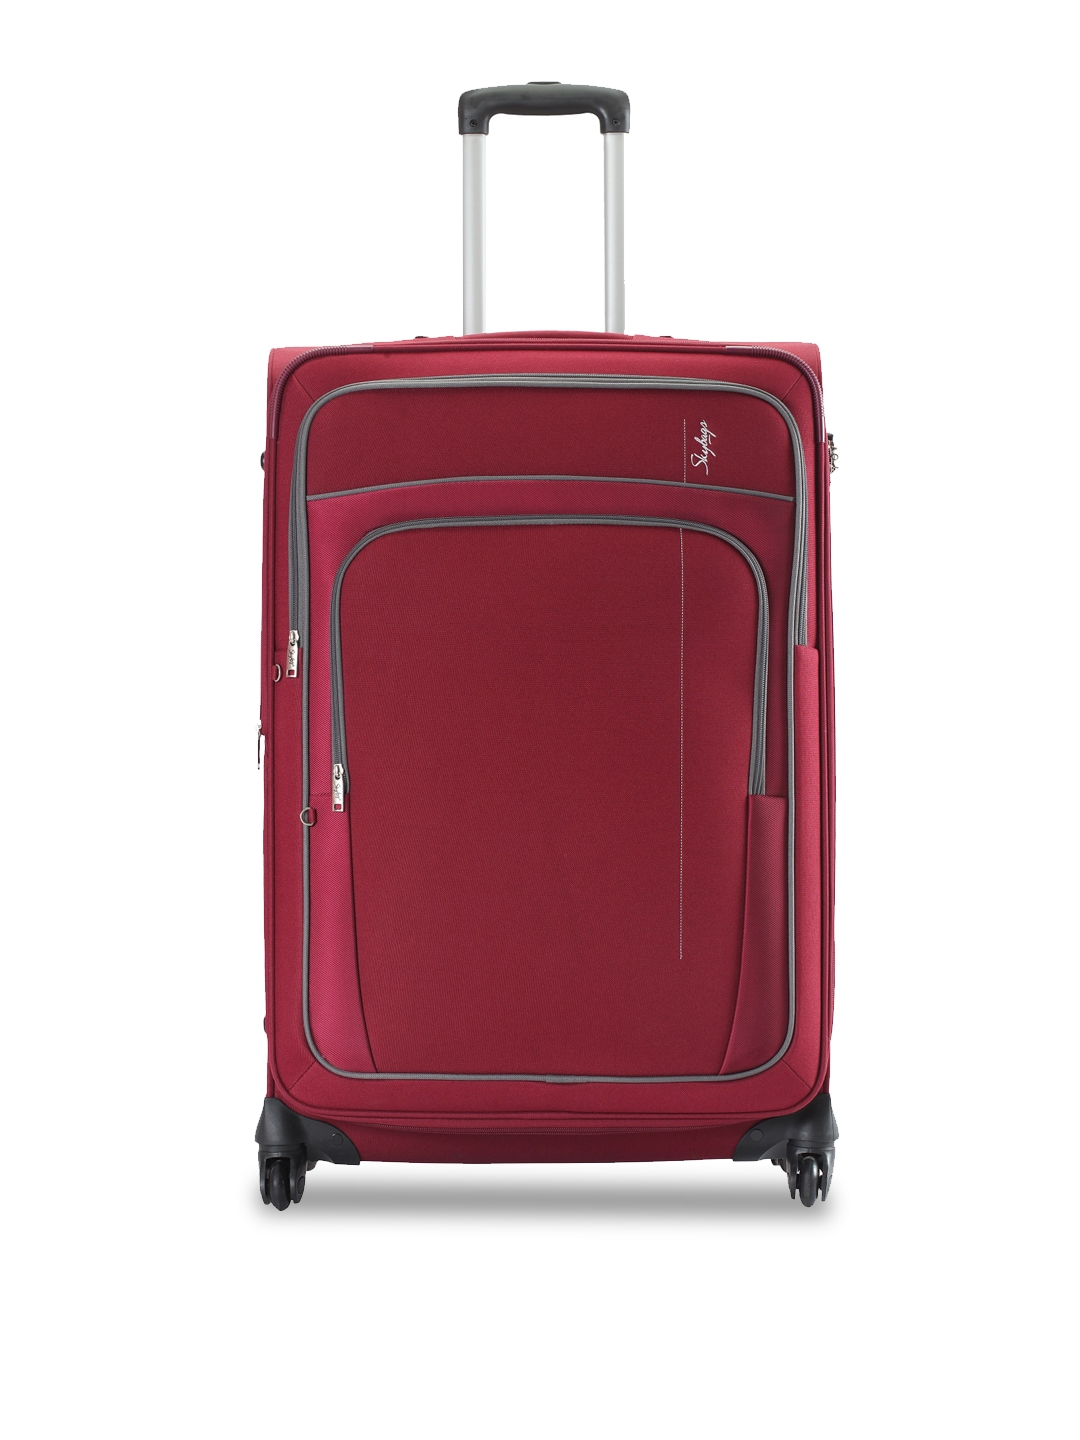 Skybags GRAND 4W EXP STROLLY 55 Red Cabin Trolley Suitcase